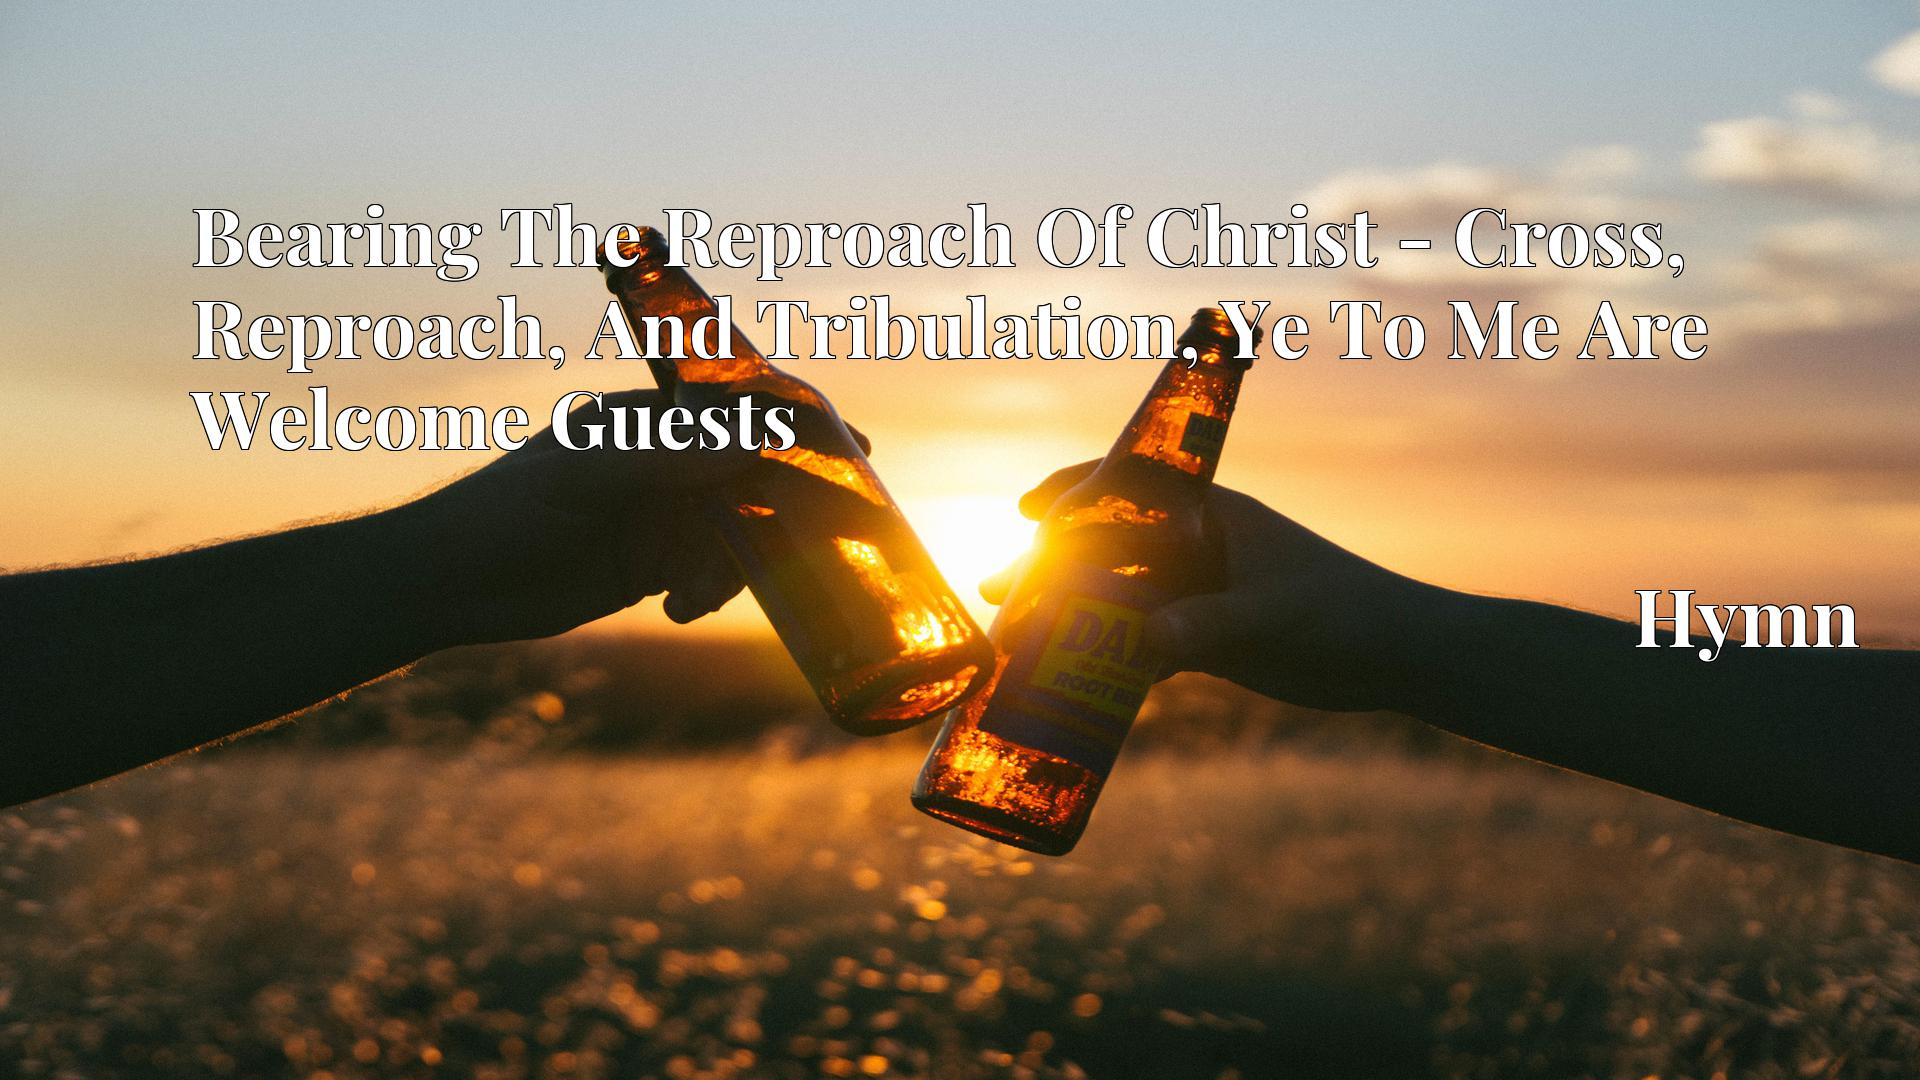 Bearing The Reproach Of Christ - Cross, Reproach, And Tribulation, Ye To Me Are Welcome Guests - Hymn